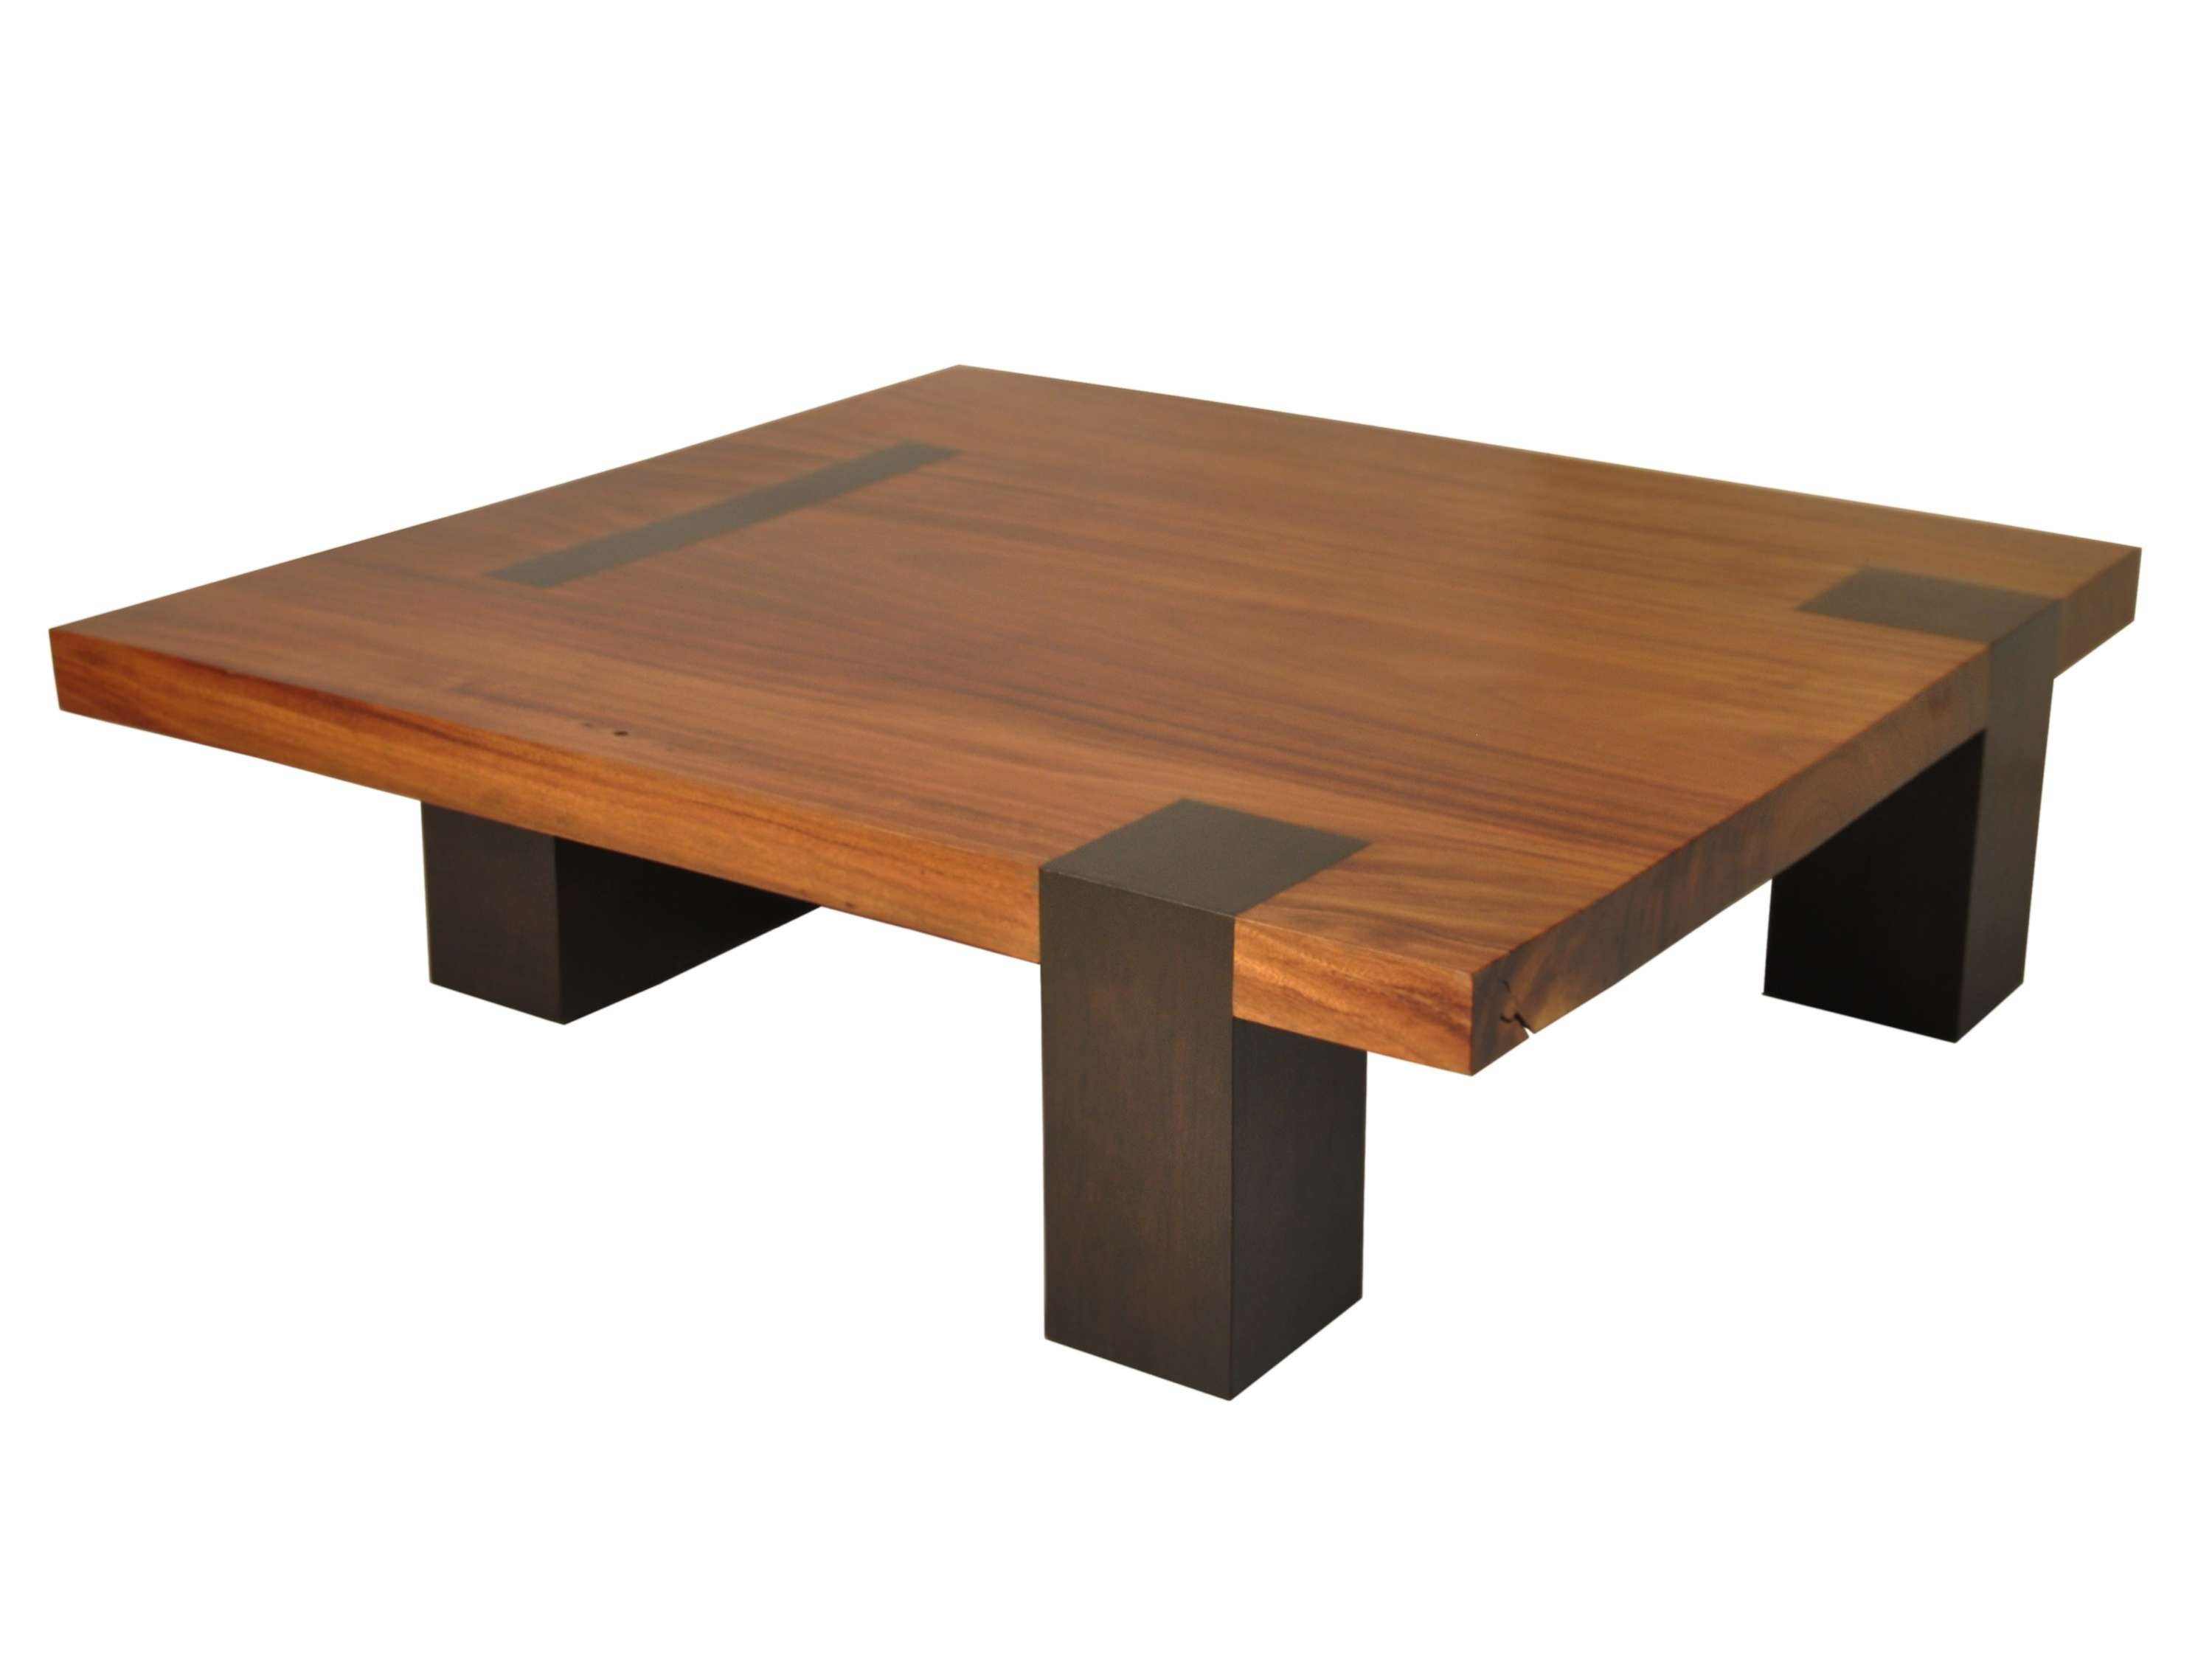 Current Square Wood Coffee Tables With Storage In Coffee Tables Ideas: Best Wood Square Coffee Table With Storage (View 14 of 20)